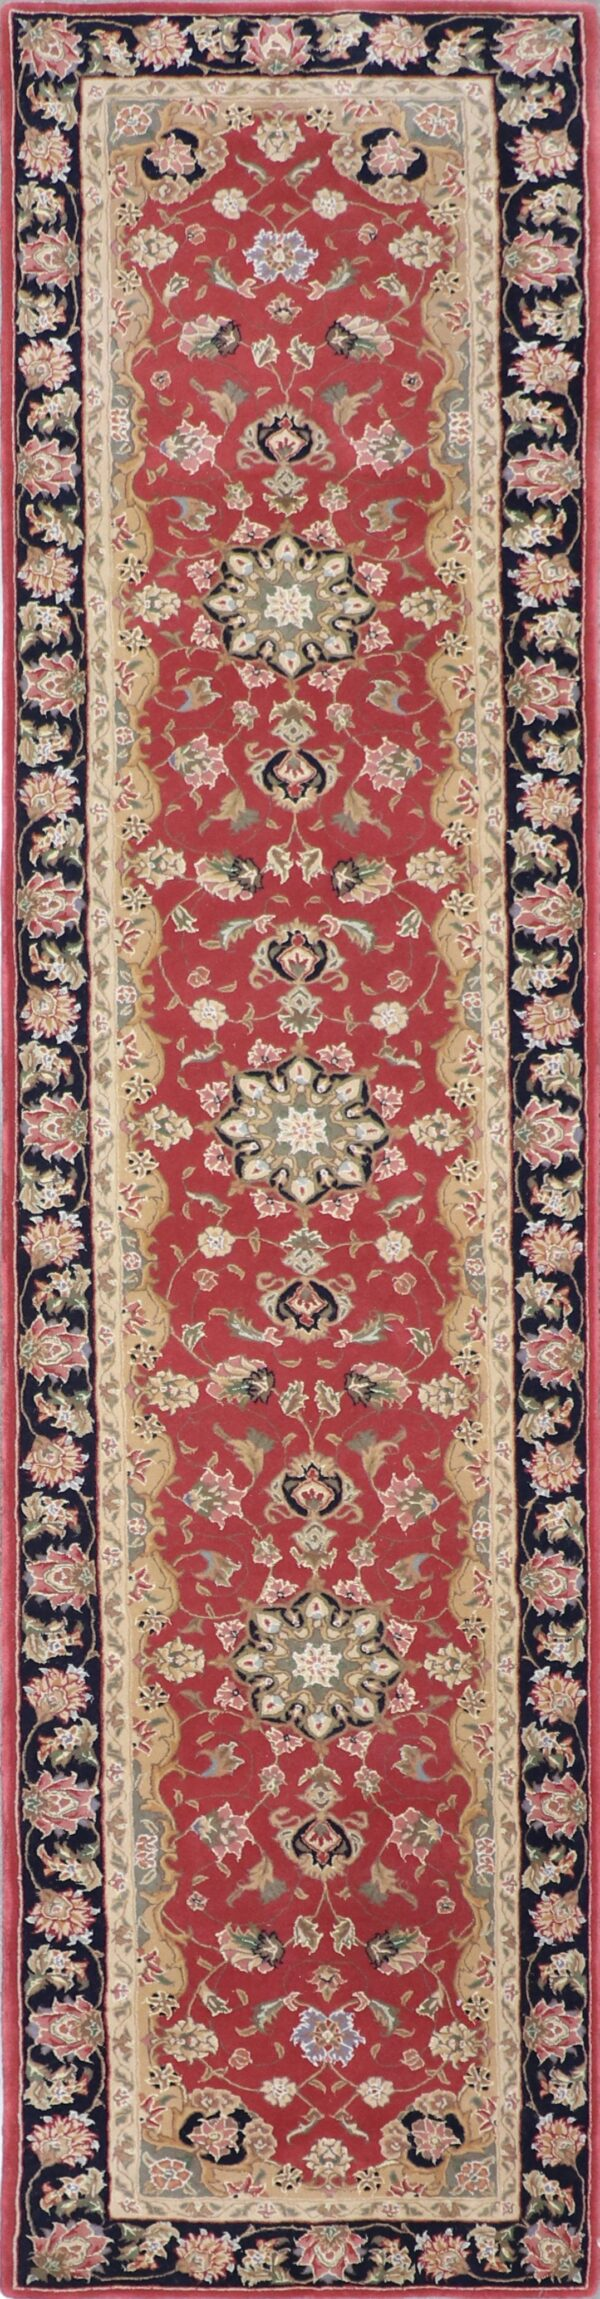 """2'6""""x12' Traditional Wool Hand-Tufted Rug - Direct Rug Import 